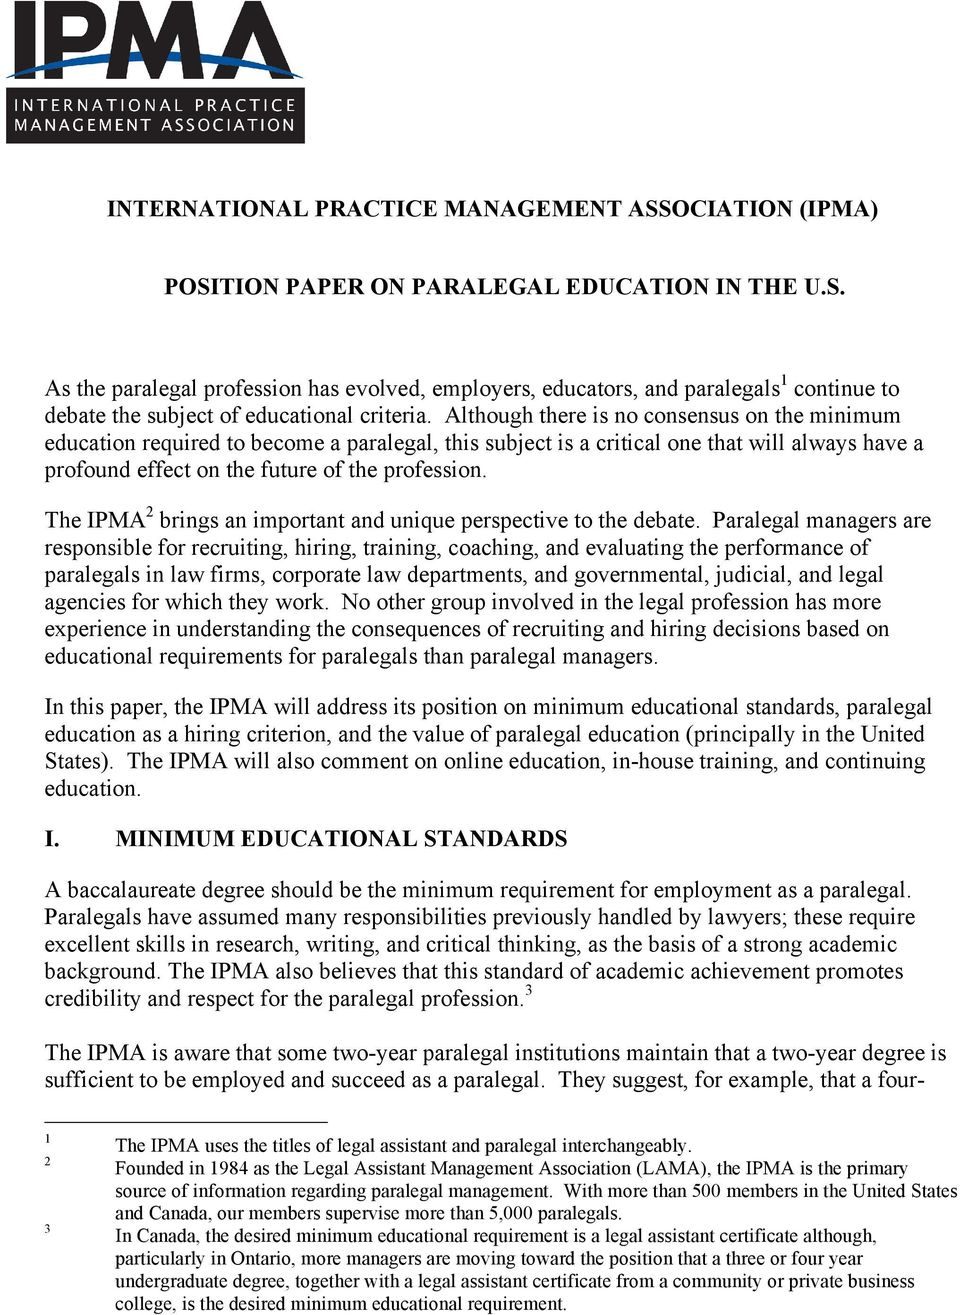 Position Paper On Paralegal Education In The Us Pdf